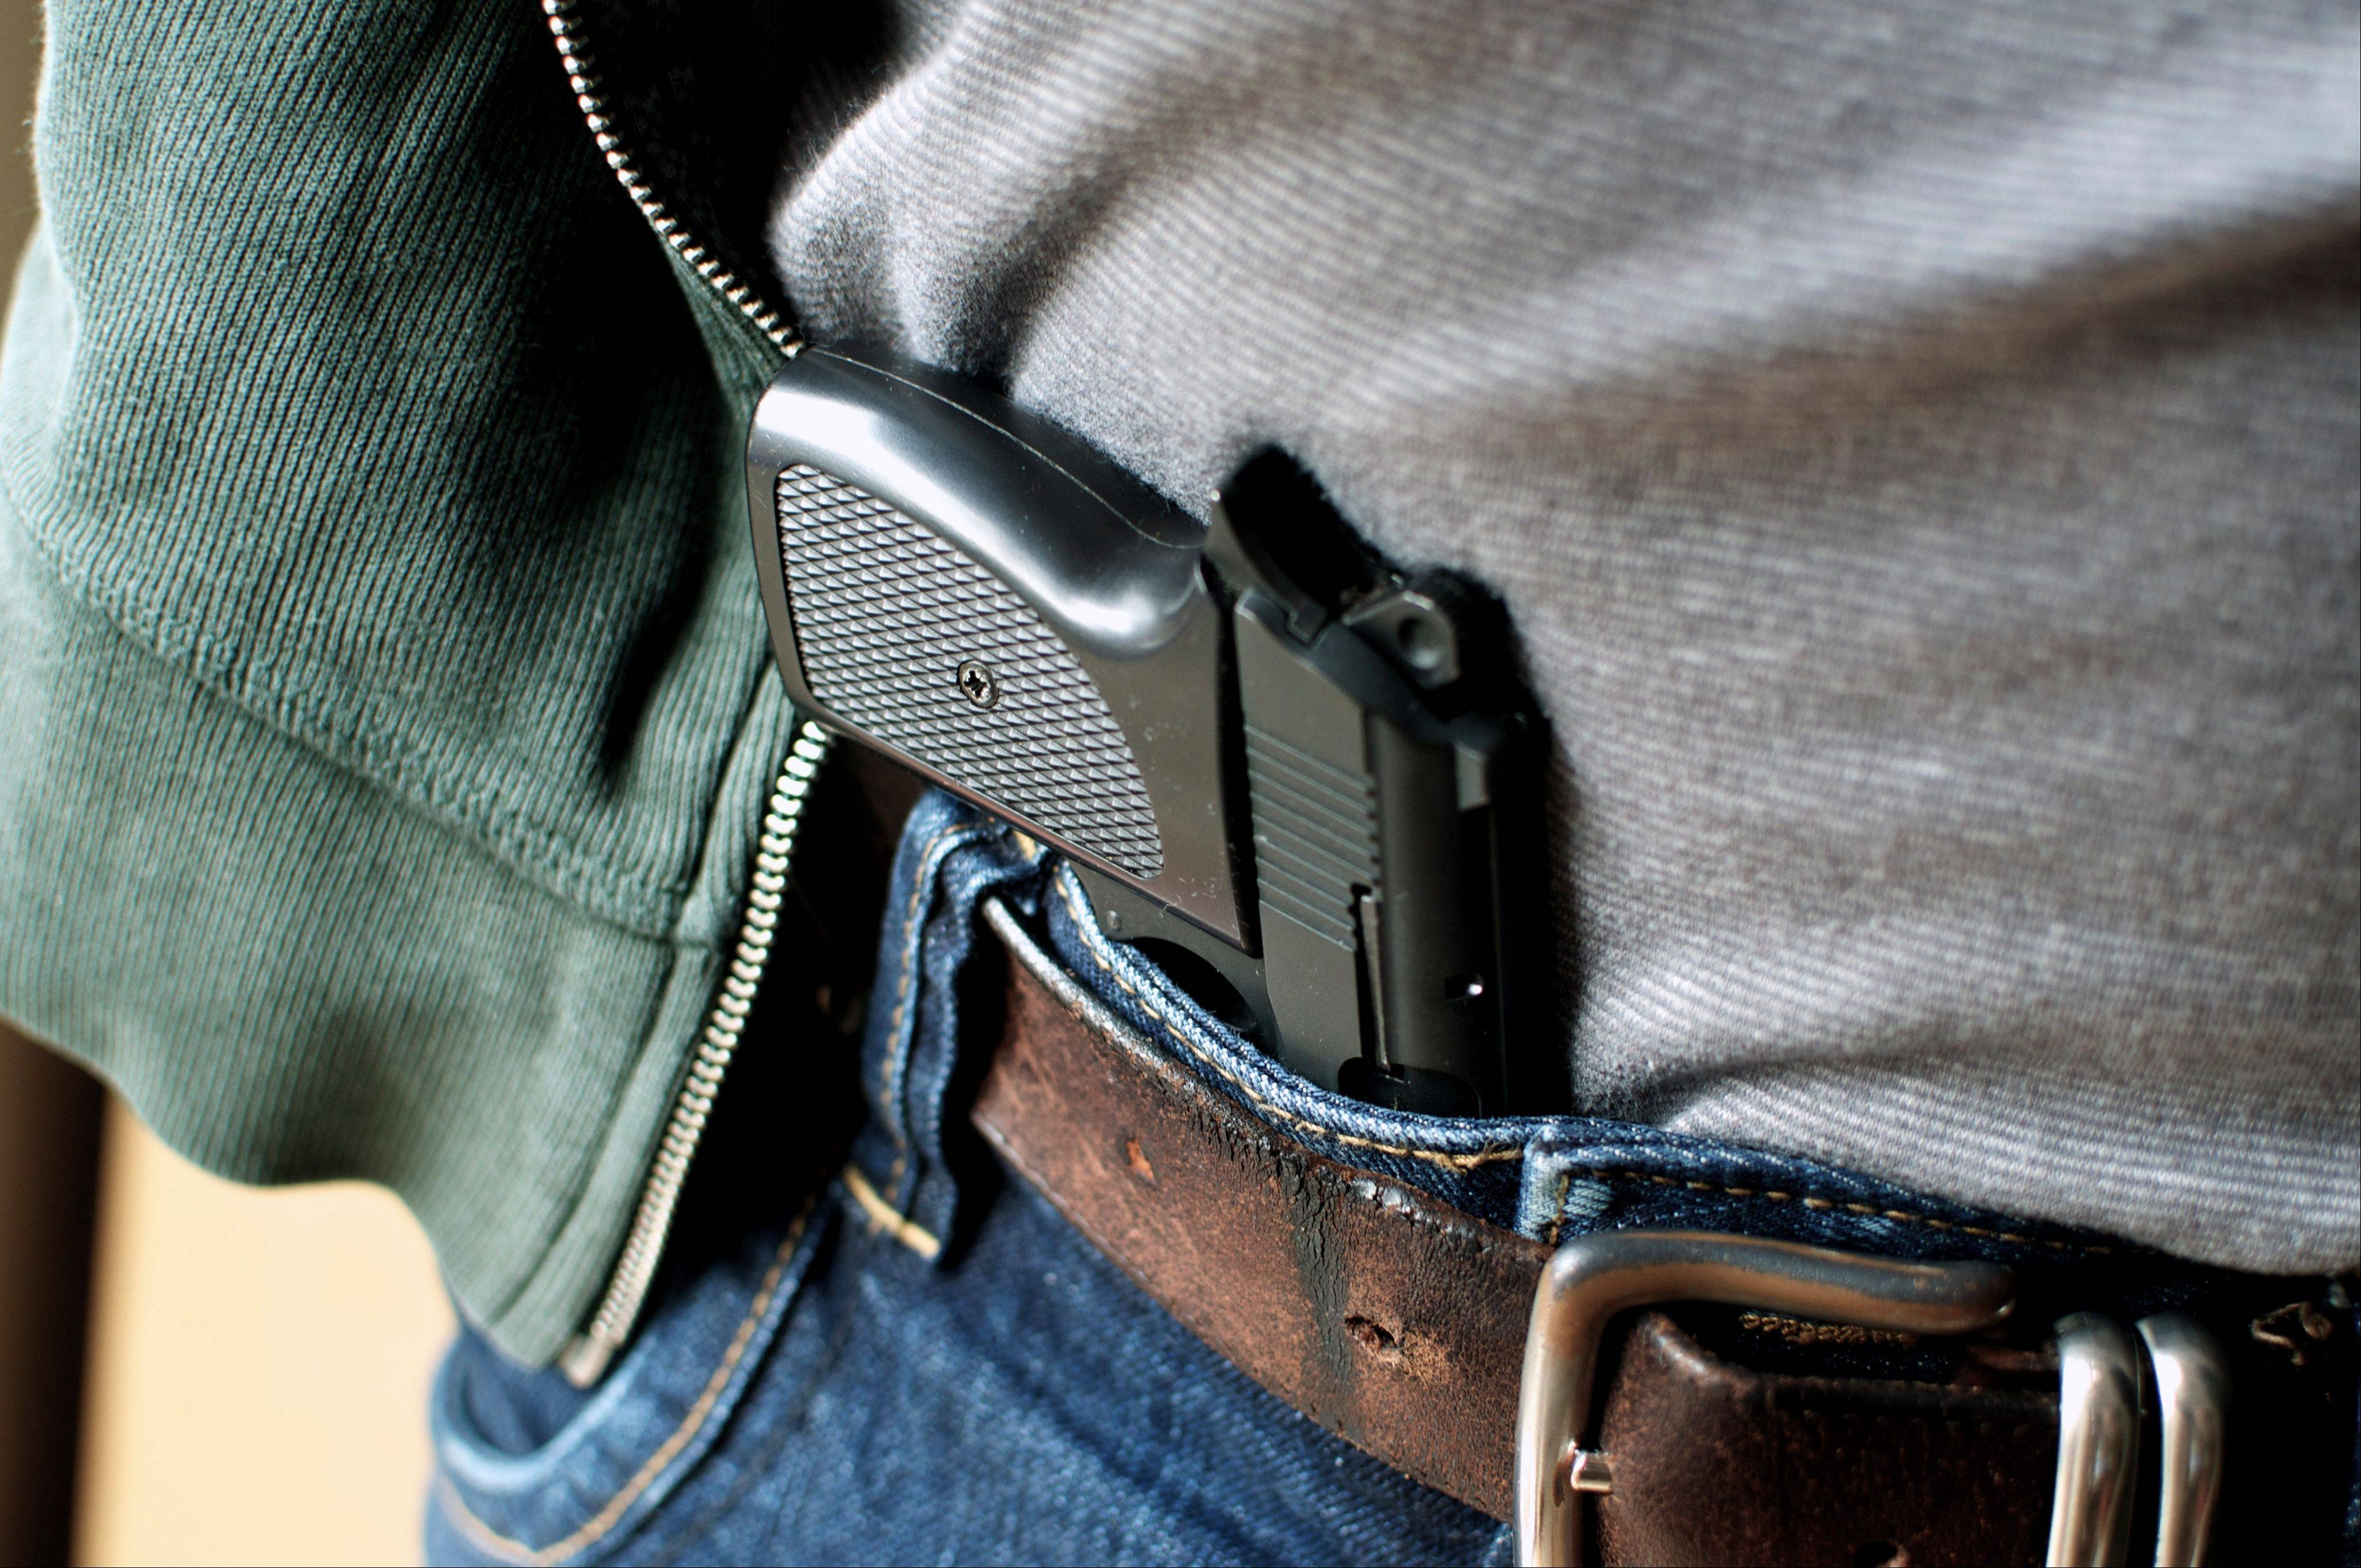 Whether Illinois or Utah, concealed carry takes training